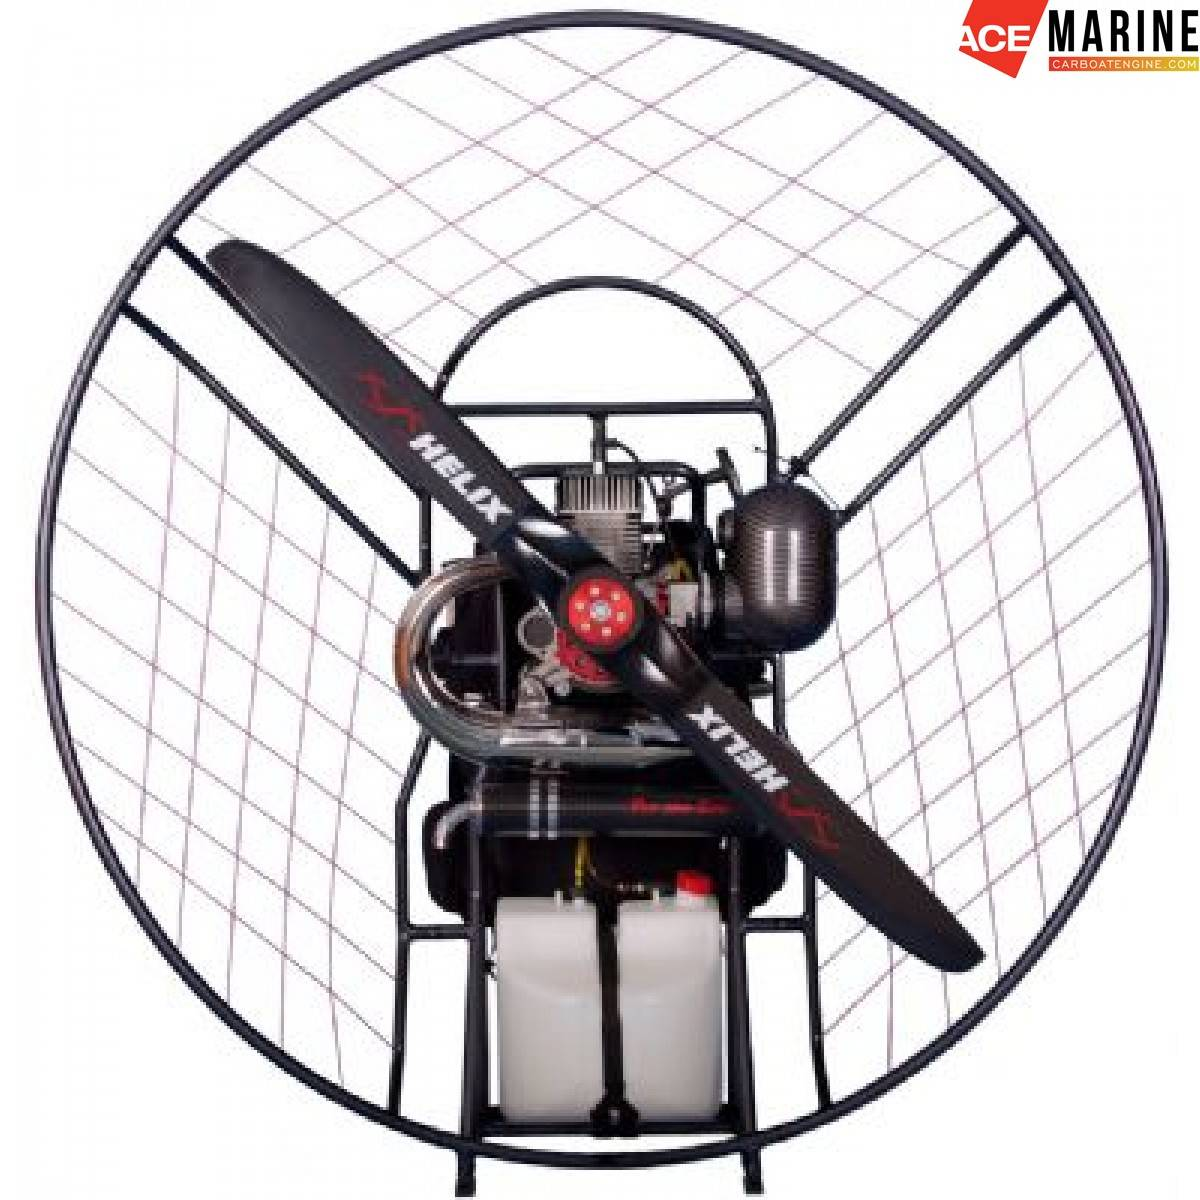 EC-10 WITH THE NEW EOS100 PARAMOTOR